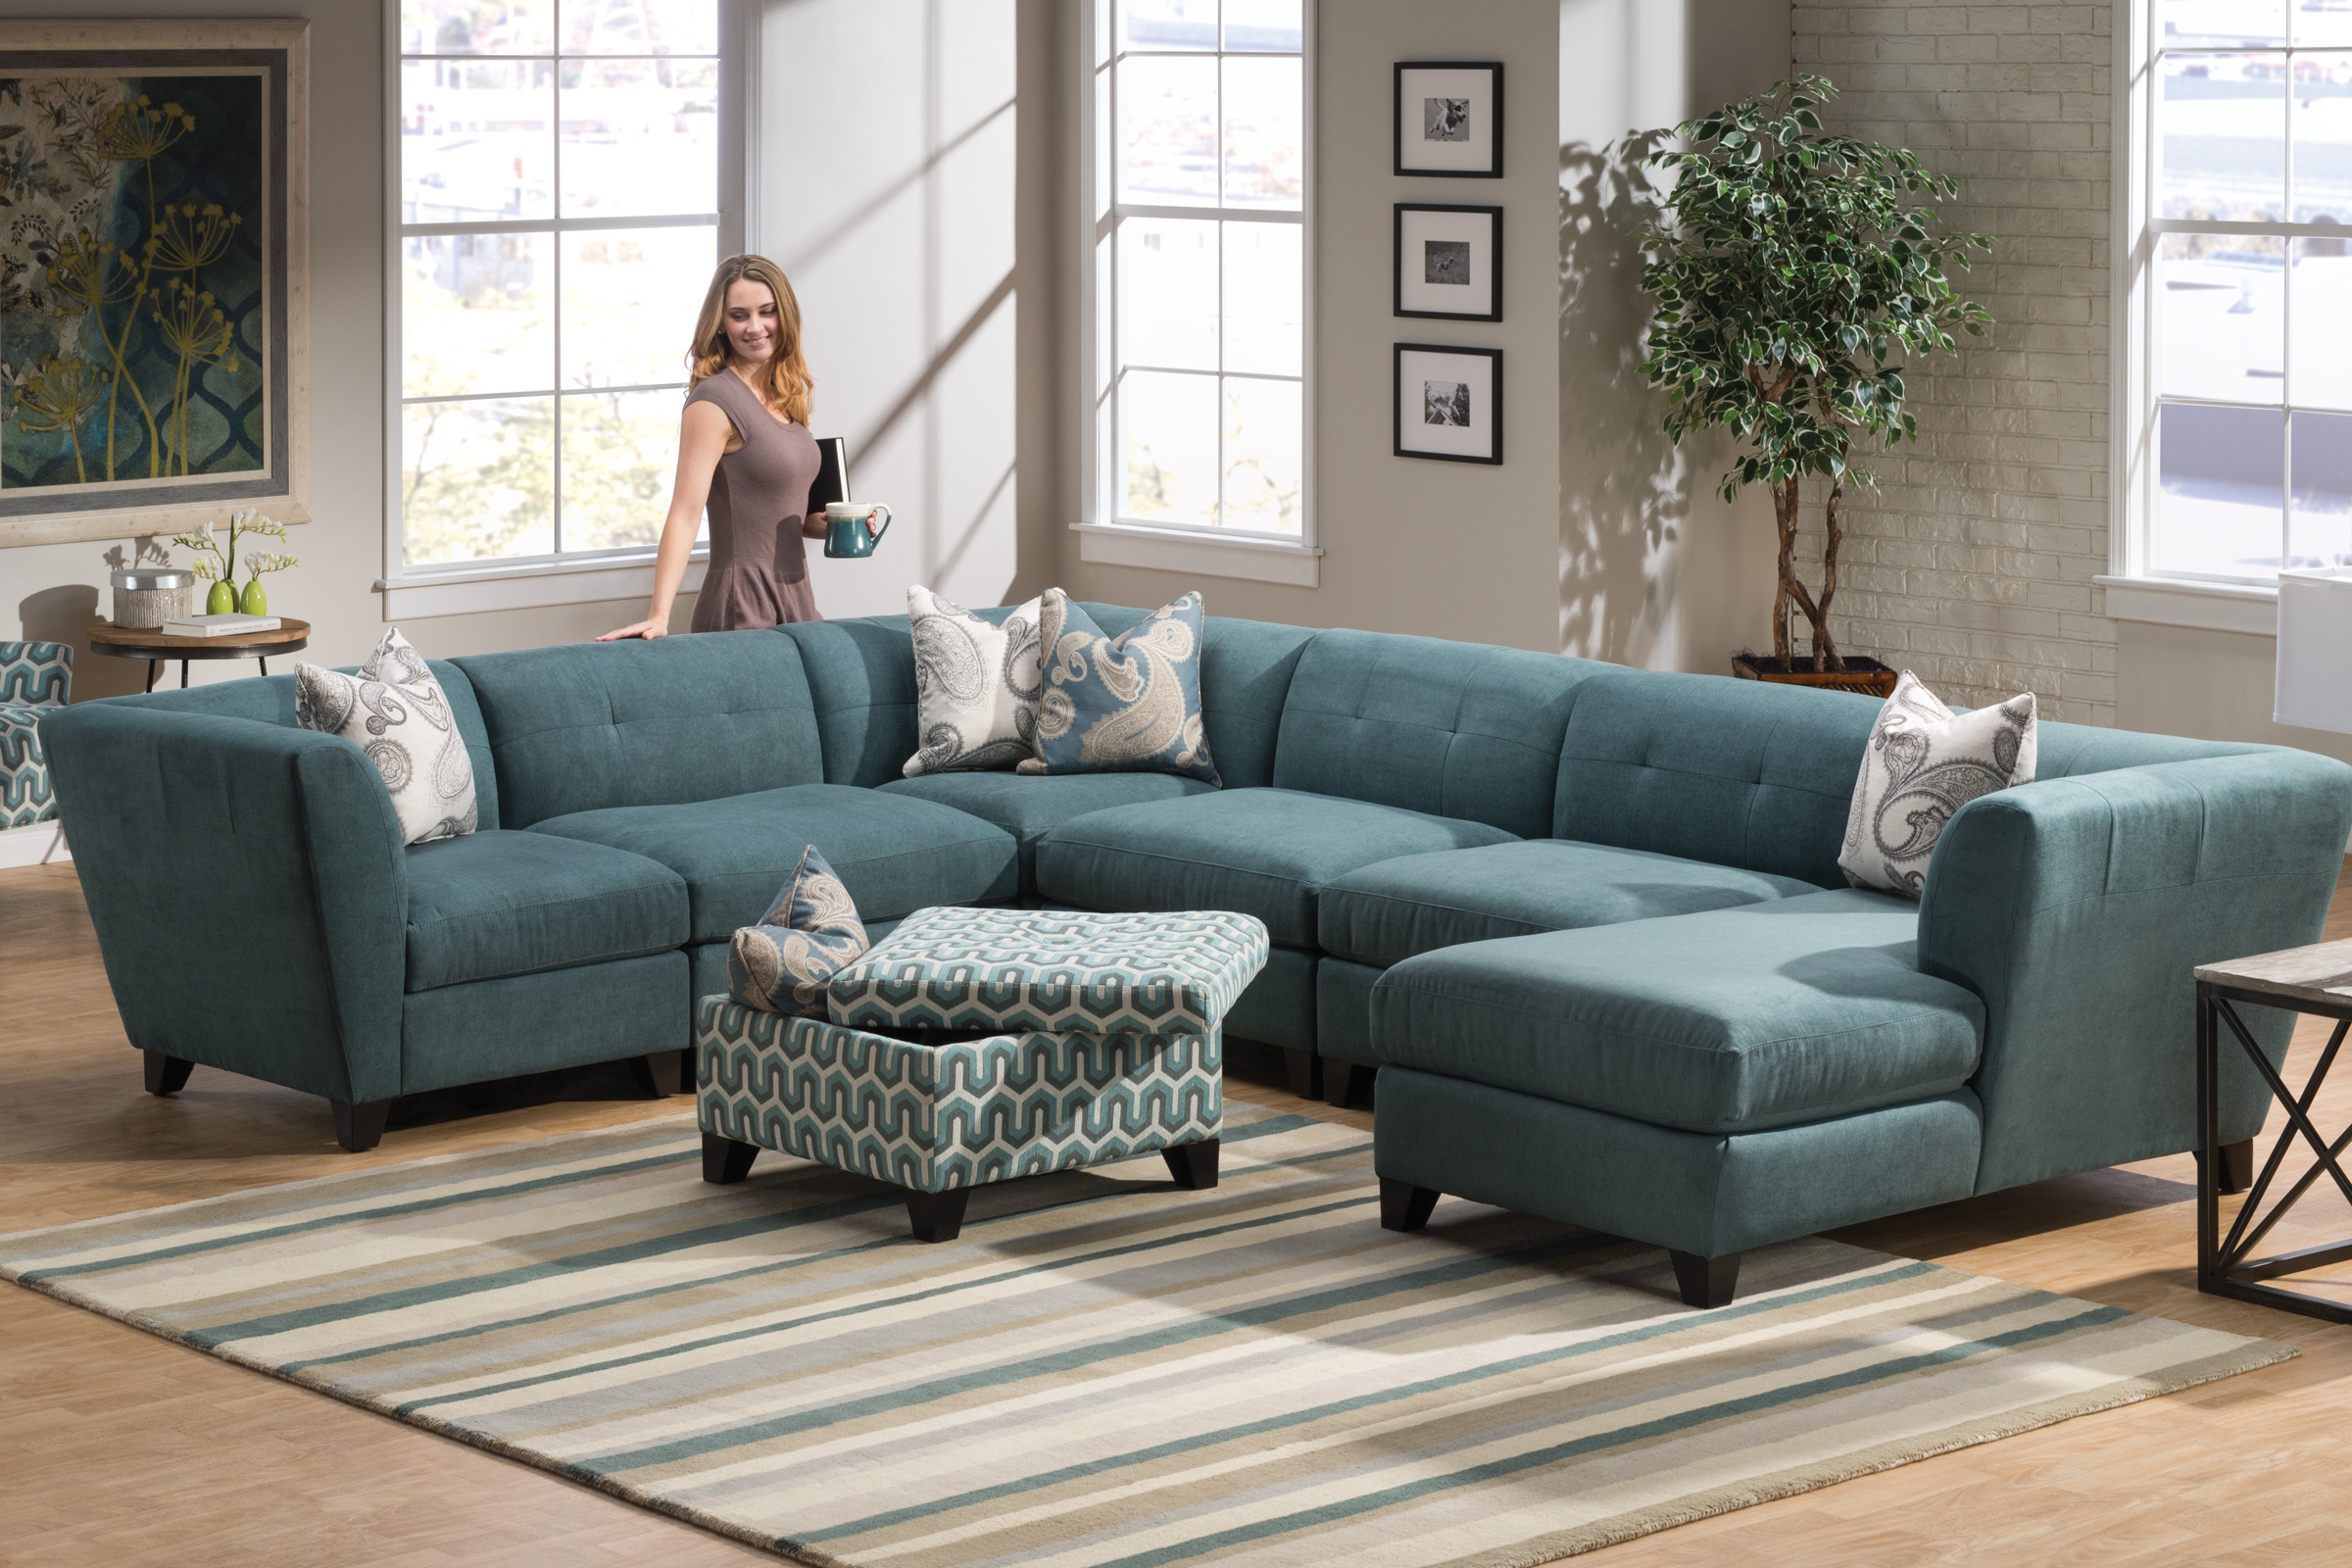 Purchase Jonathan Louis Furniture Review